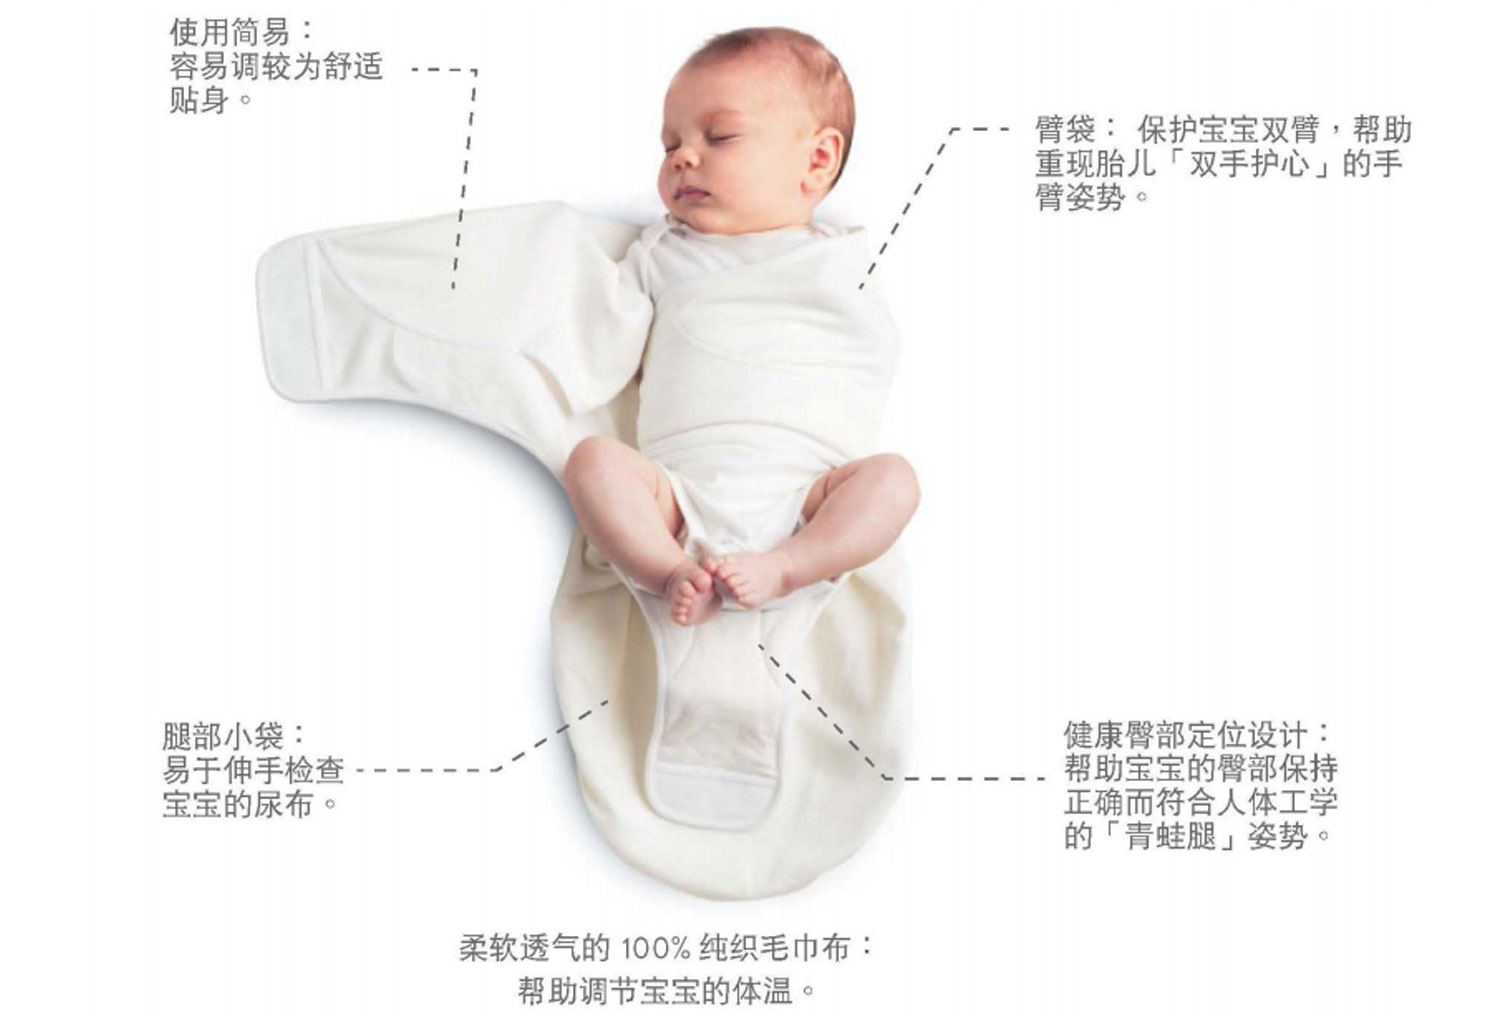 ergobaby sleep tight swaddler wrapper 新生儿宝宝放惊吓包巾睡袋